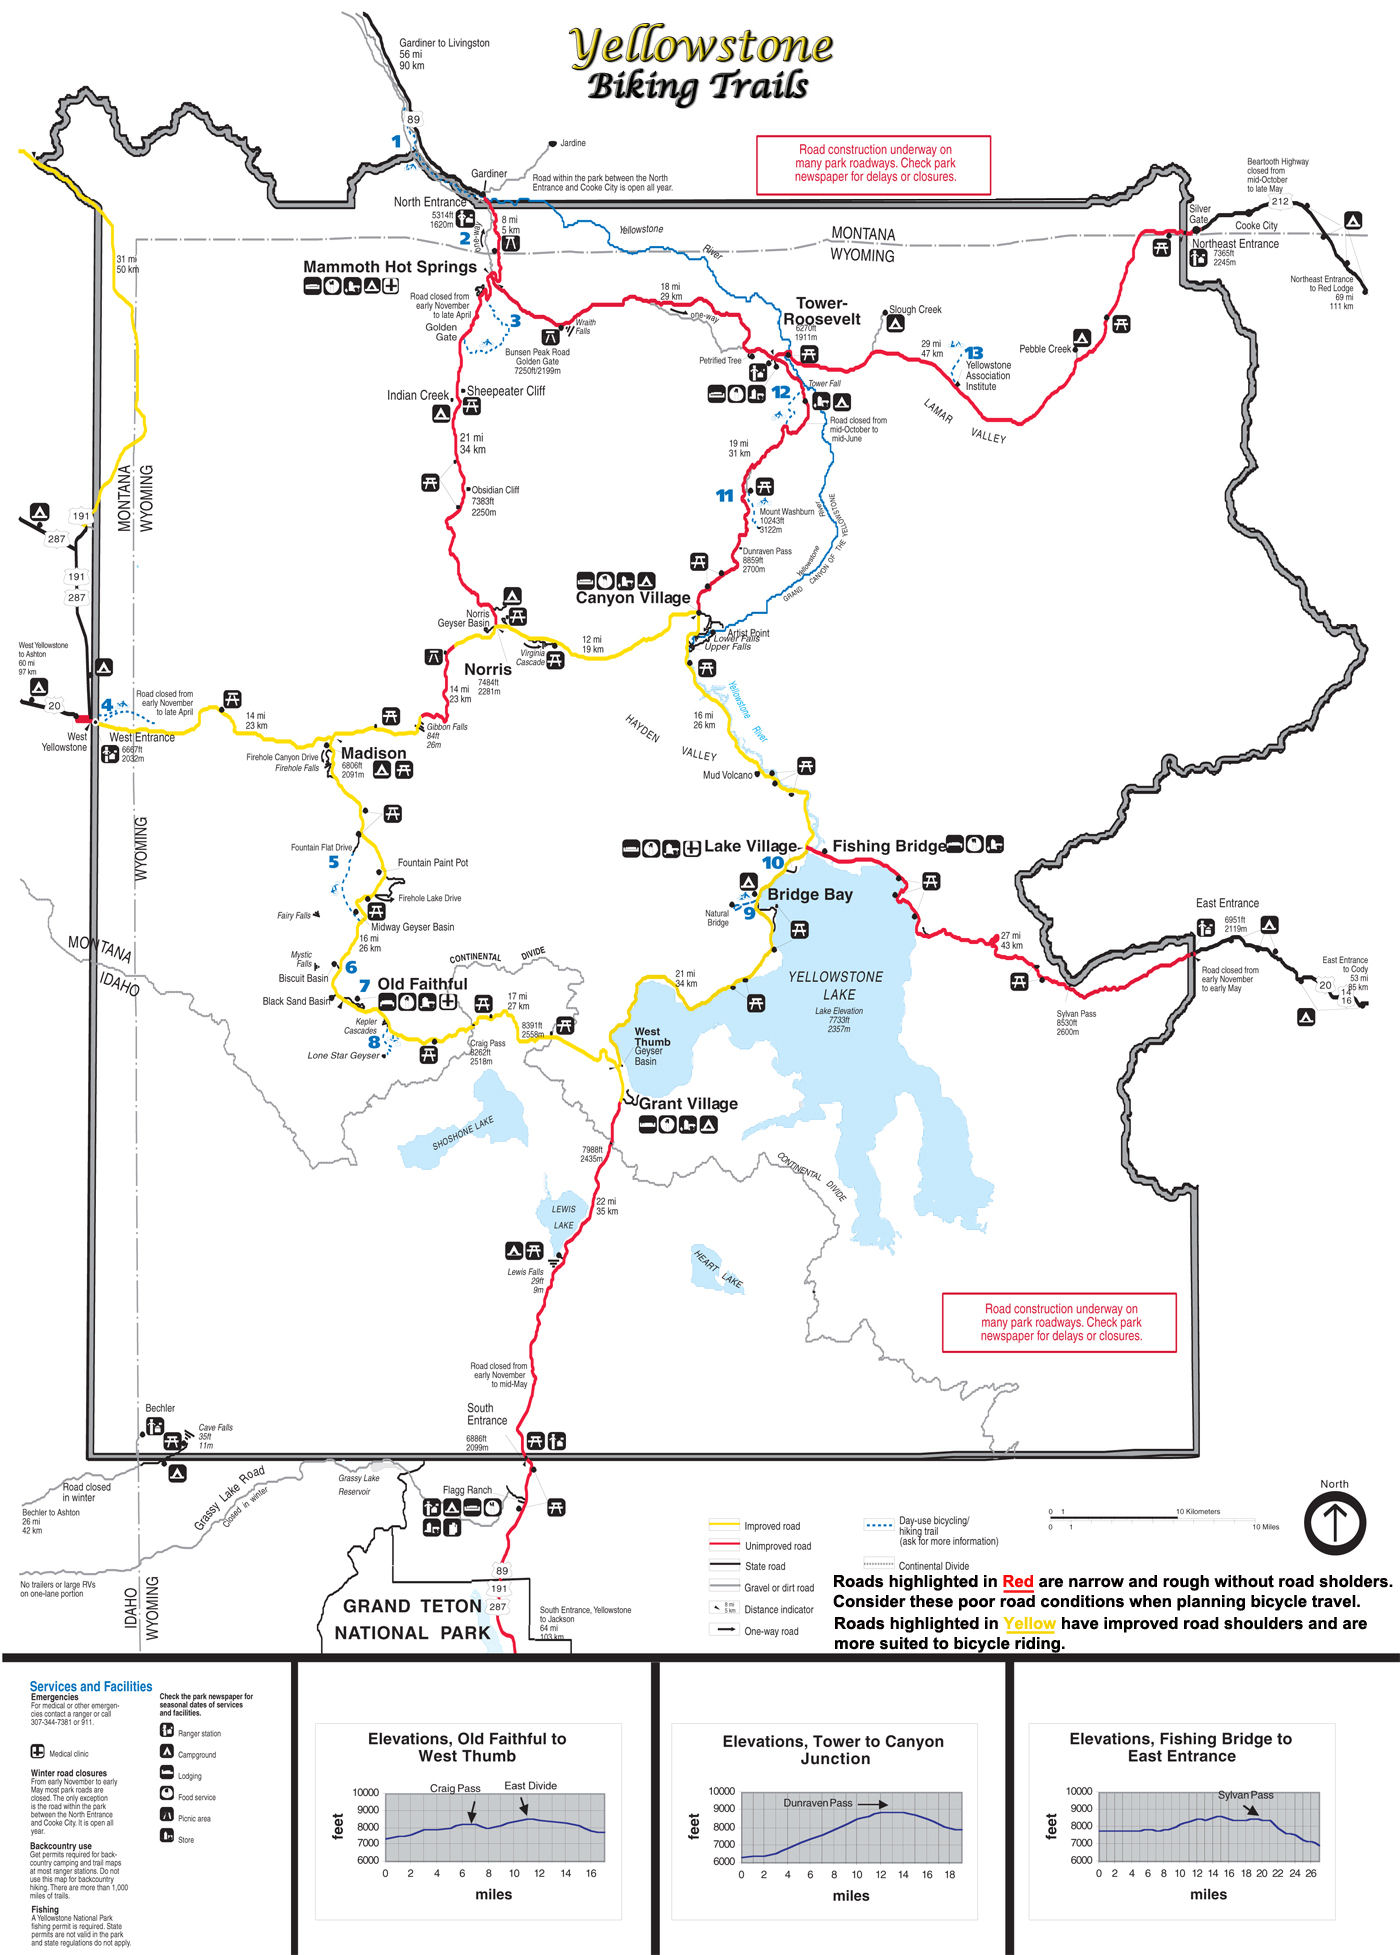 Yellowstone National Park Biking Map - NPS Document